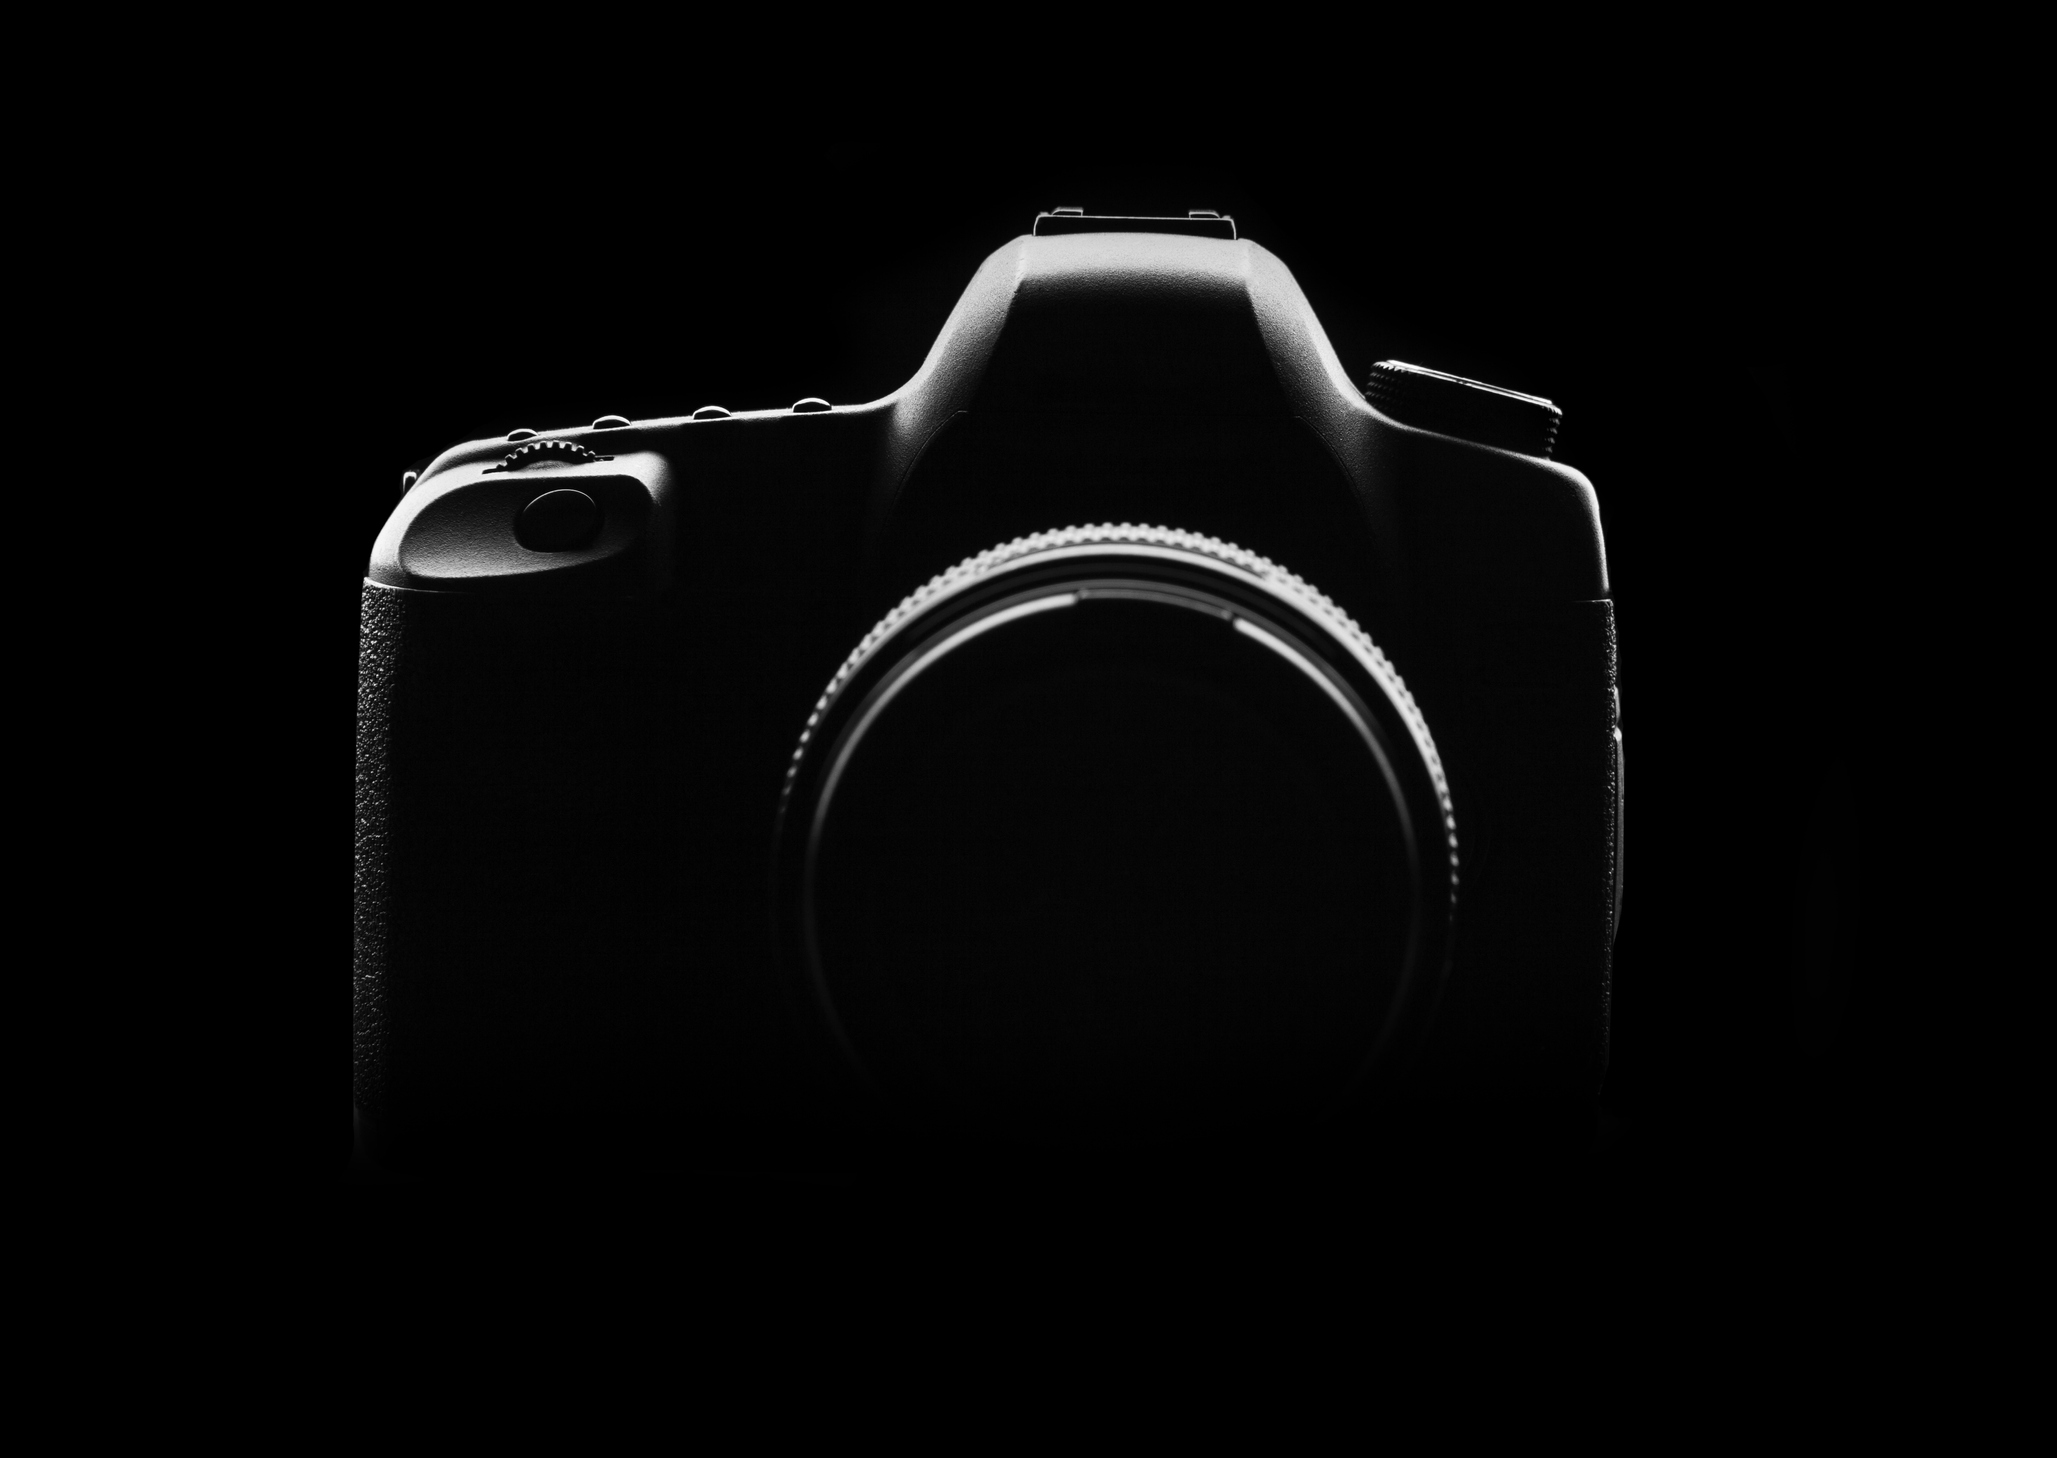 camera rumors 2019 image